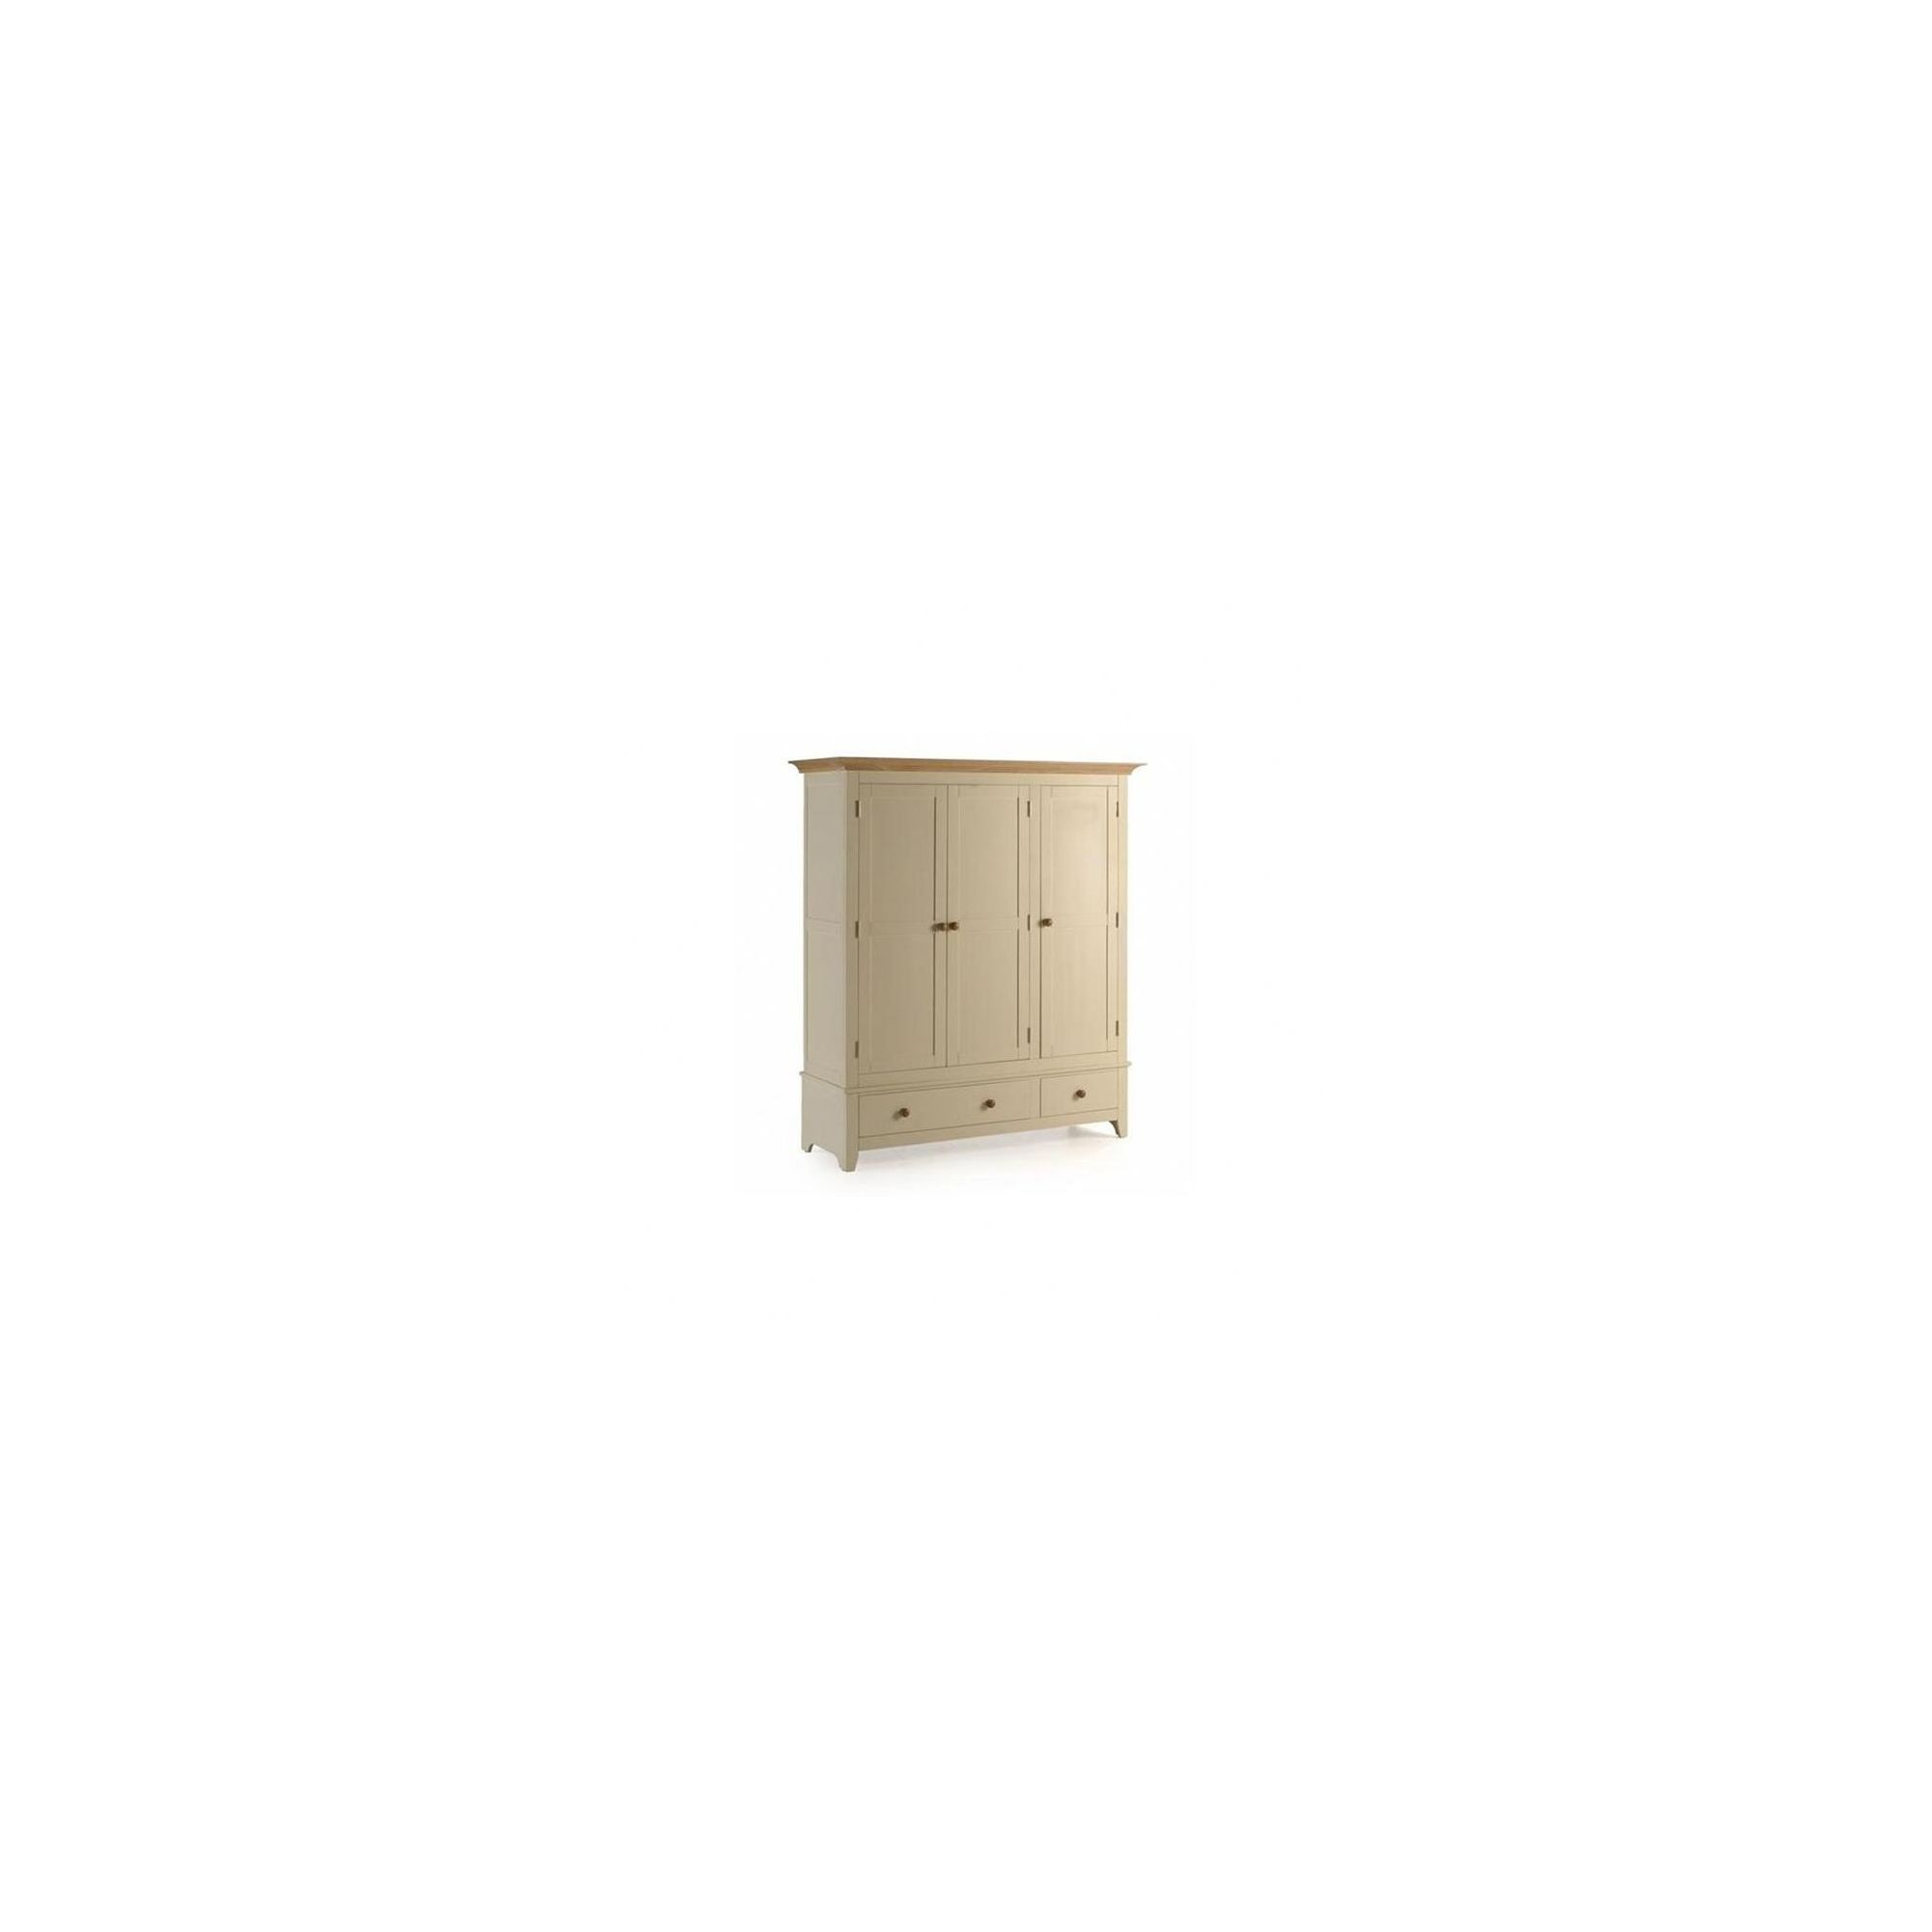 Ametis Camden Painted Pine and Ash Two Drawer Wardrobe in Painted Ivory - 161cm at Tesco Direct